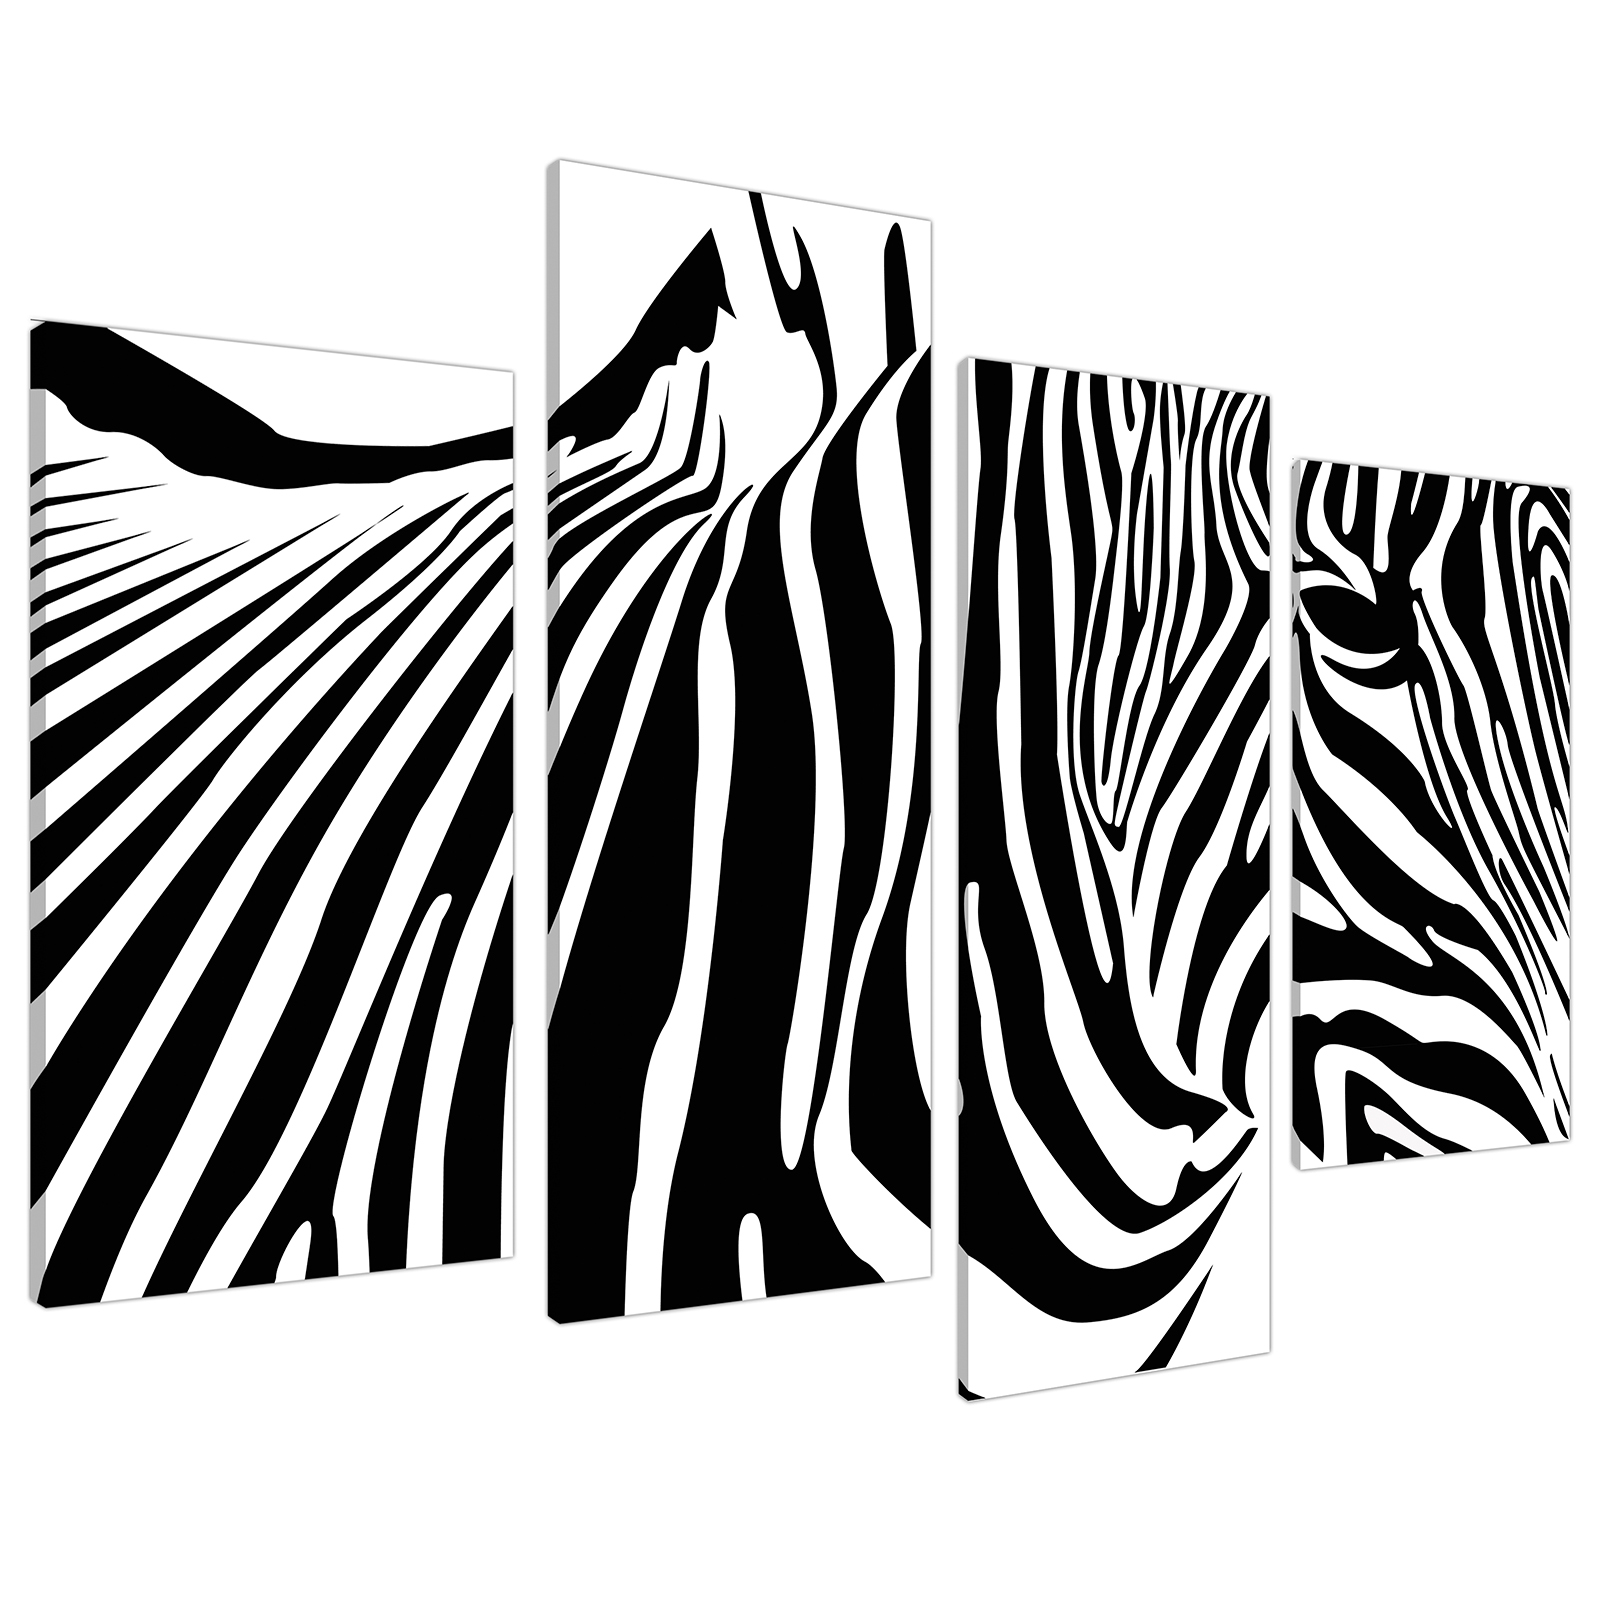 An image of Black White Abstract Zebra Stripes Canvas - Multi 4 Panel - 130cm - 4022